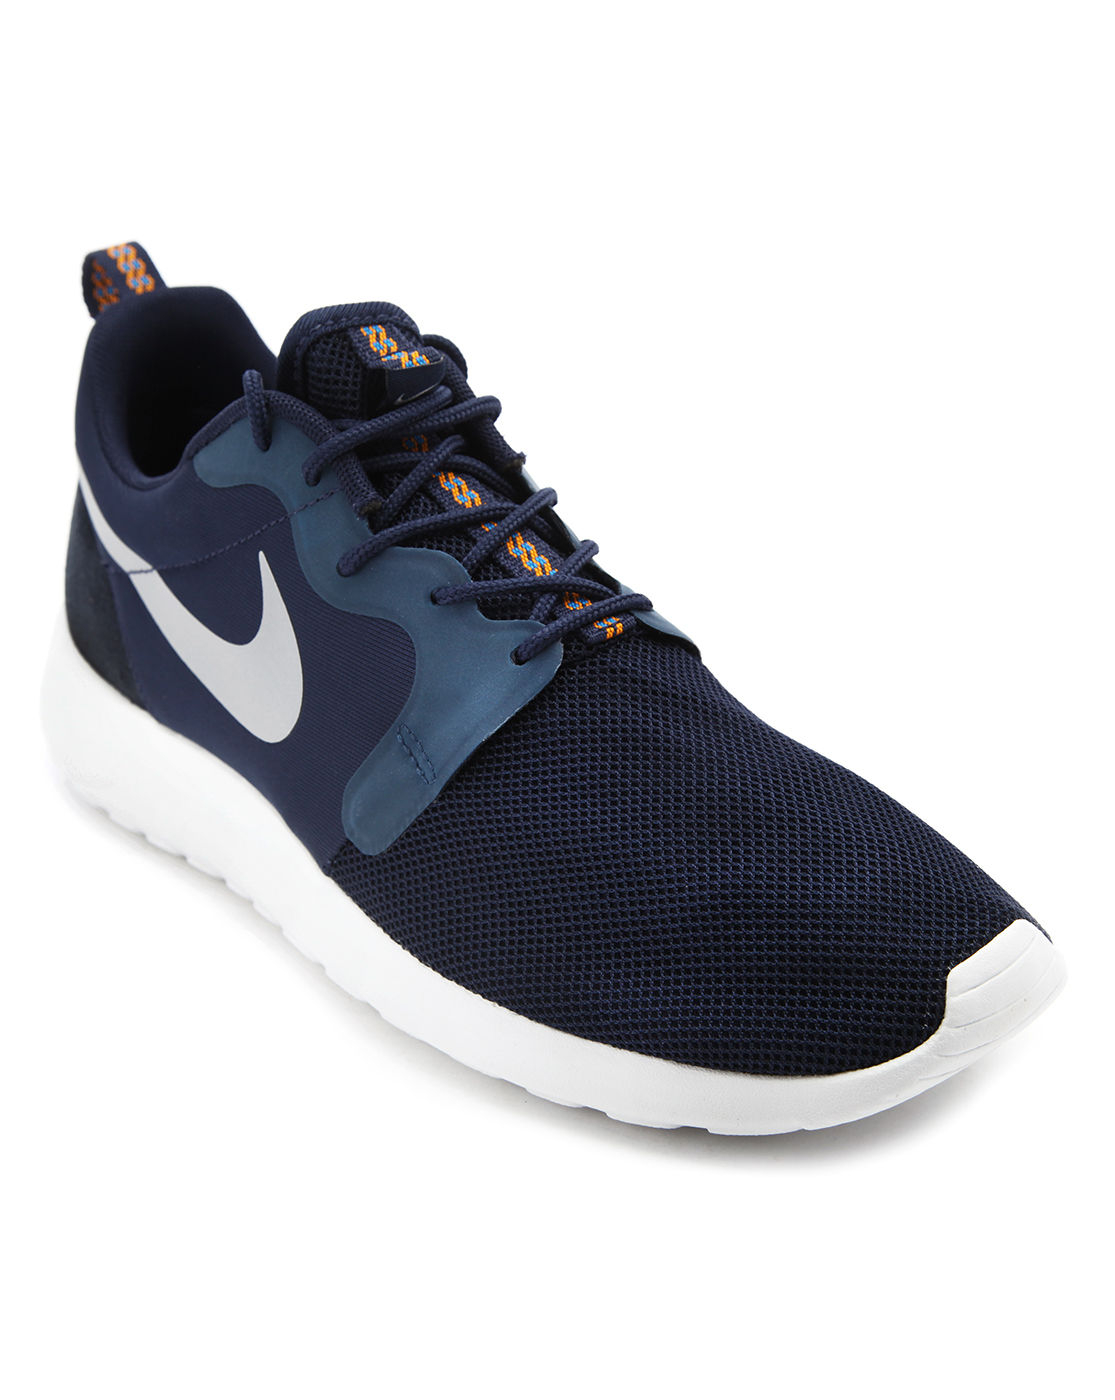 nike roshe run hyp navy sneakers in blue for men navy lyst. Black Bedroom Furniture Sets. Home Design Ideas